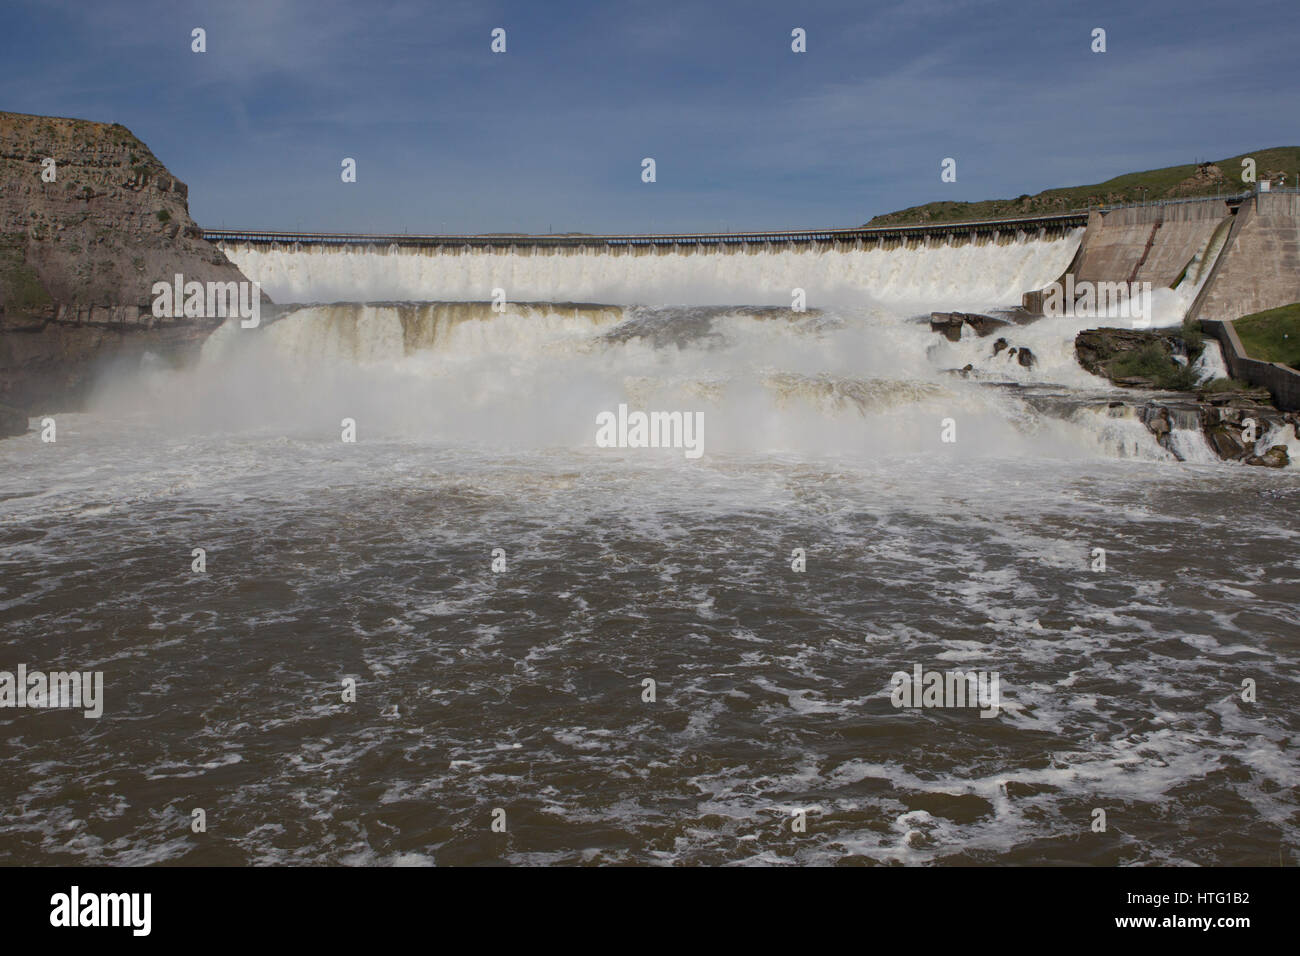 Late spring runoff storms over Ryan Dam and the Great Falls of the Missouri River. - Stock Image